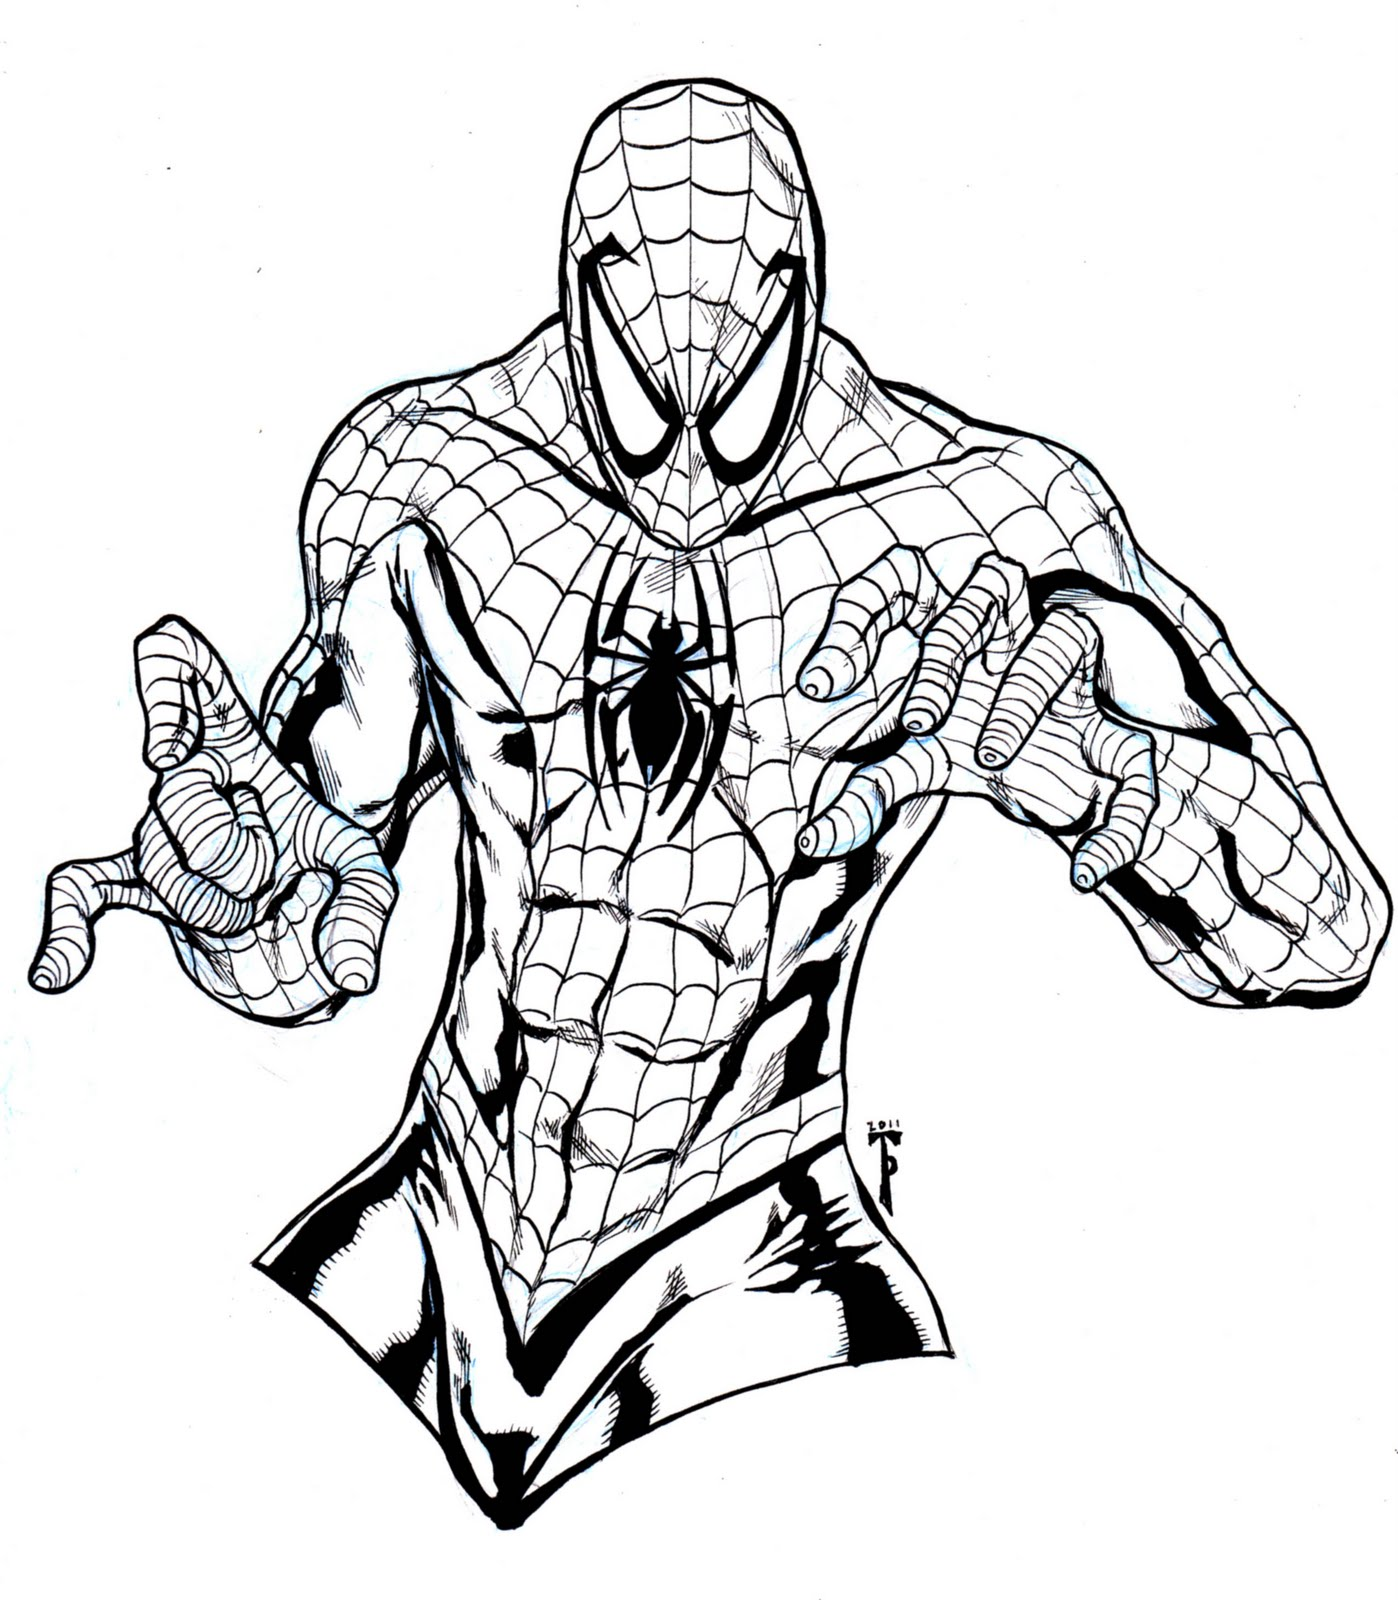 Spider Man Line Drawing At Getdrawings Com Free For Personal Use